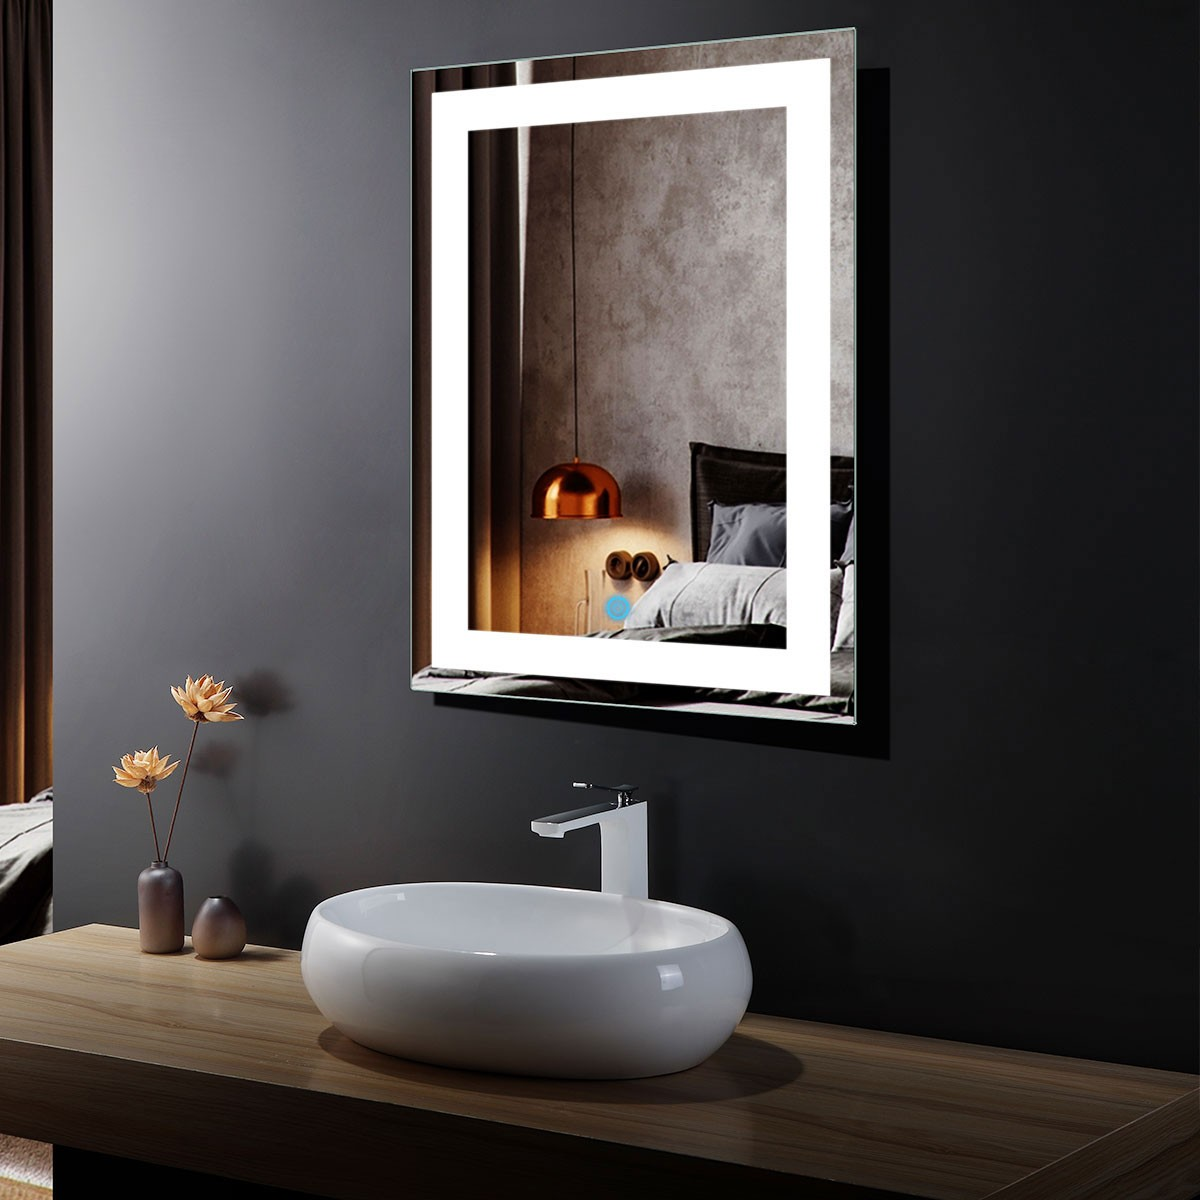 24 x 32 In Vertical LED Mirror, Touch Button (DK-OD-CK010)